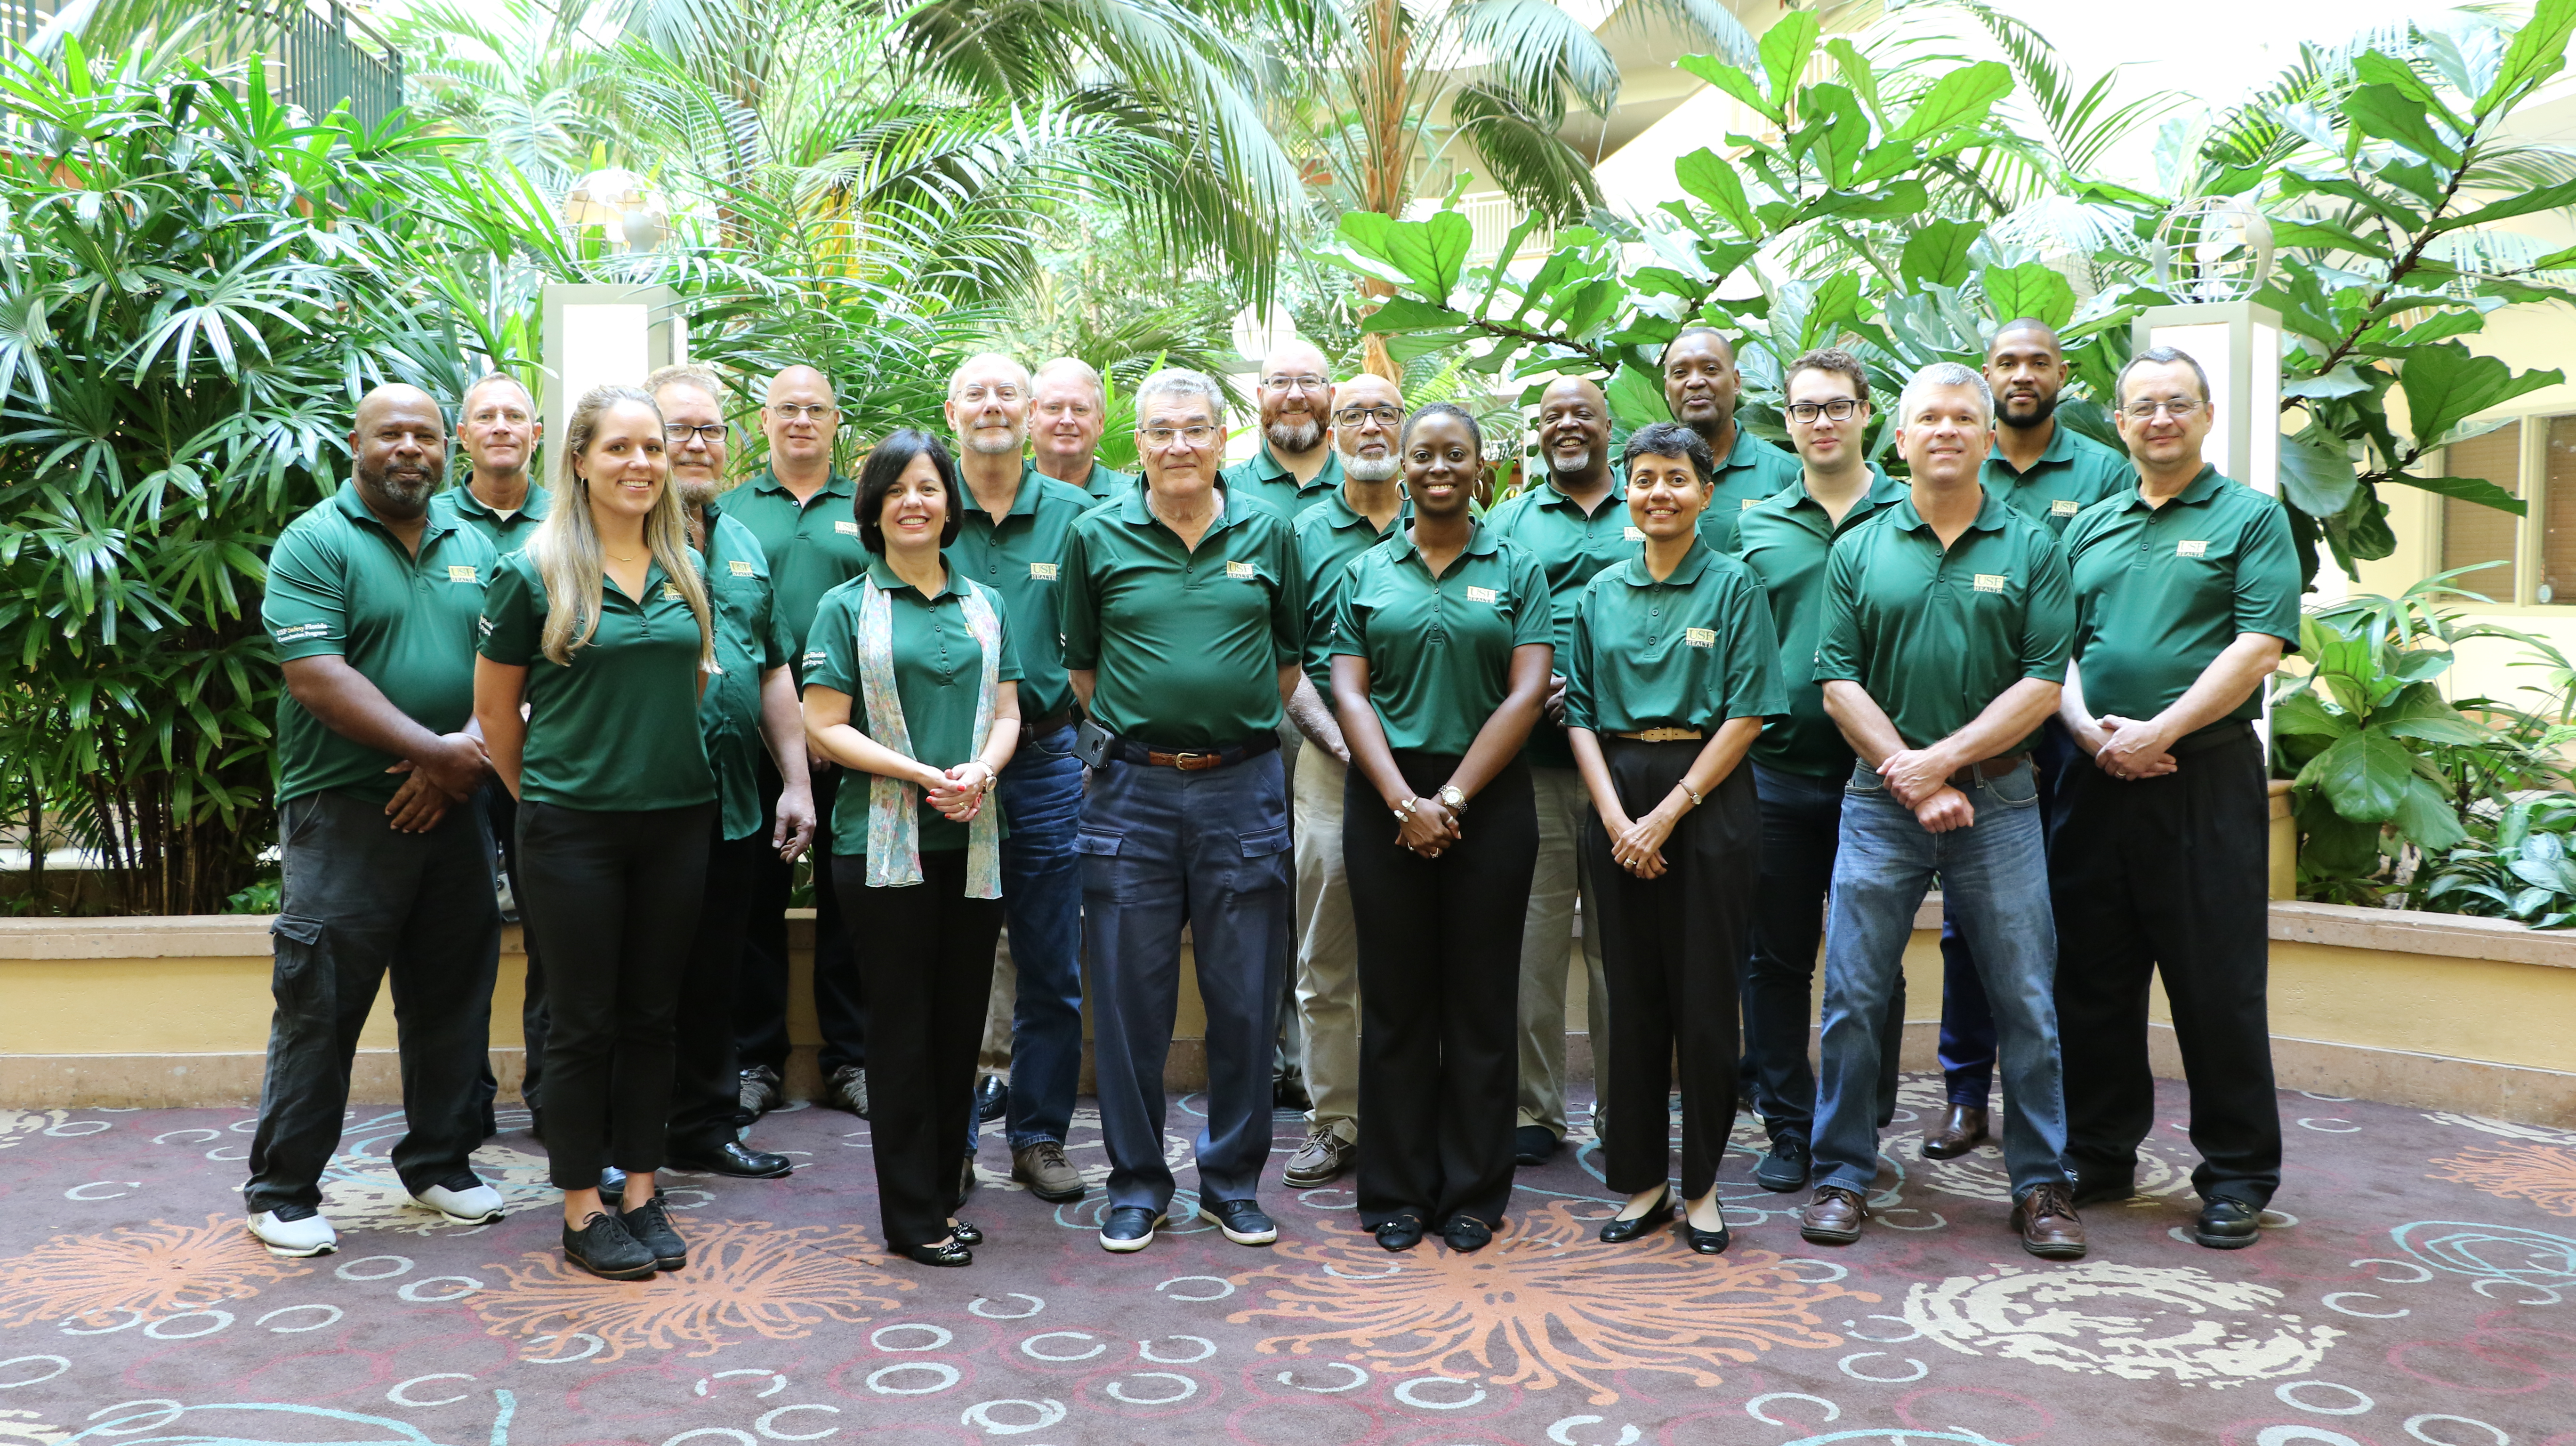 USF Consultation Program at the University of South Florida group photo